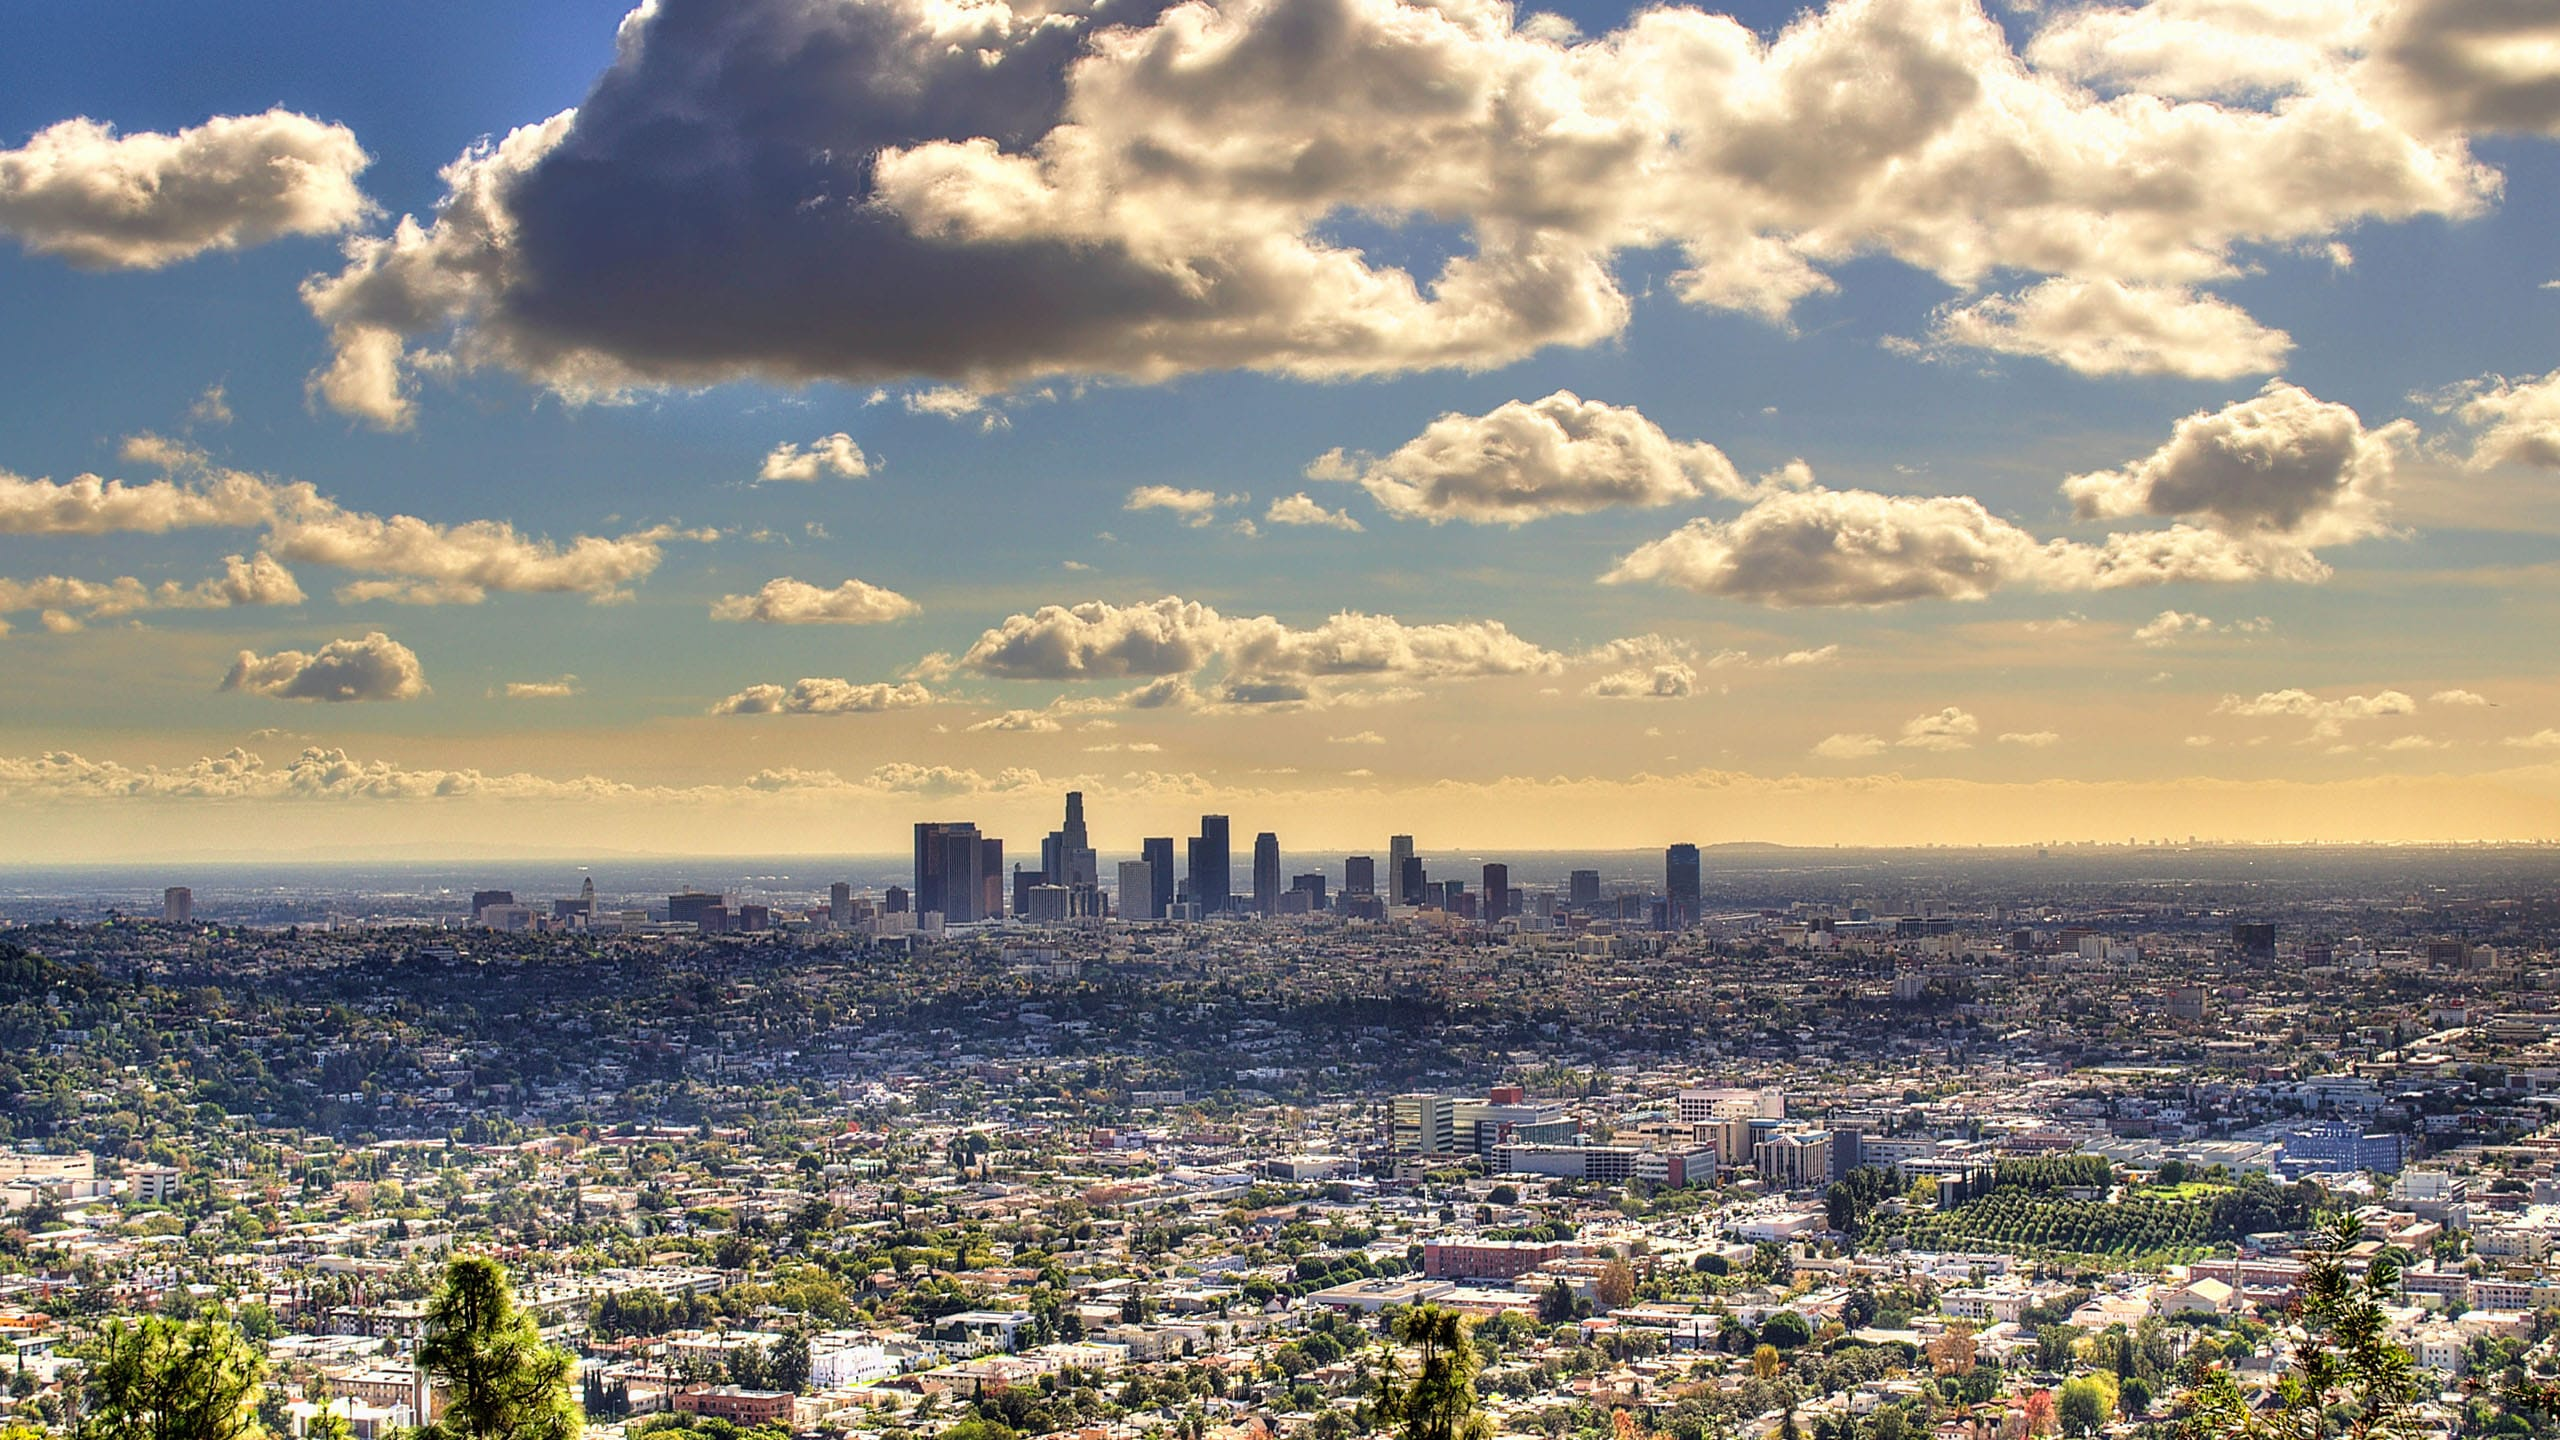 Los Angeles Pictures